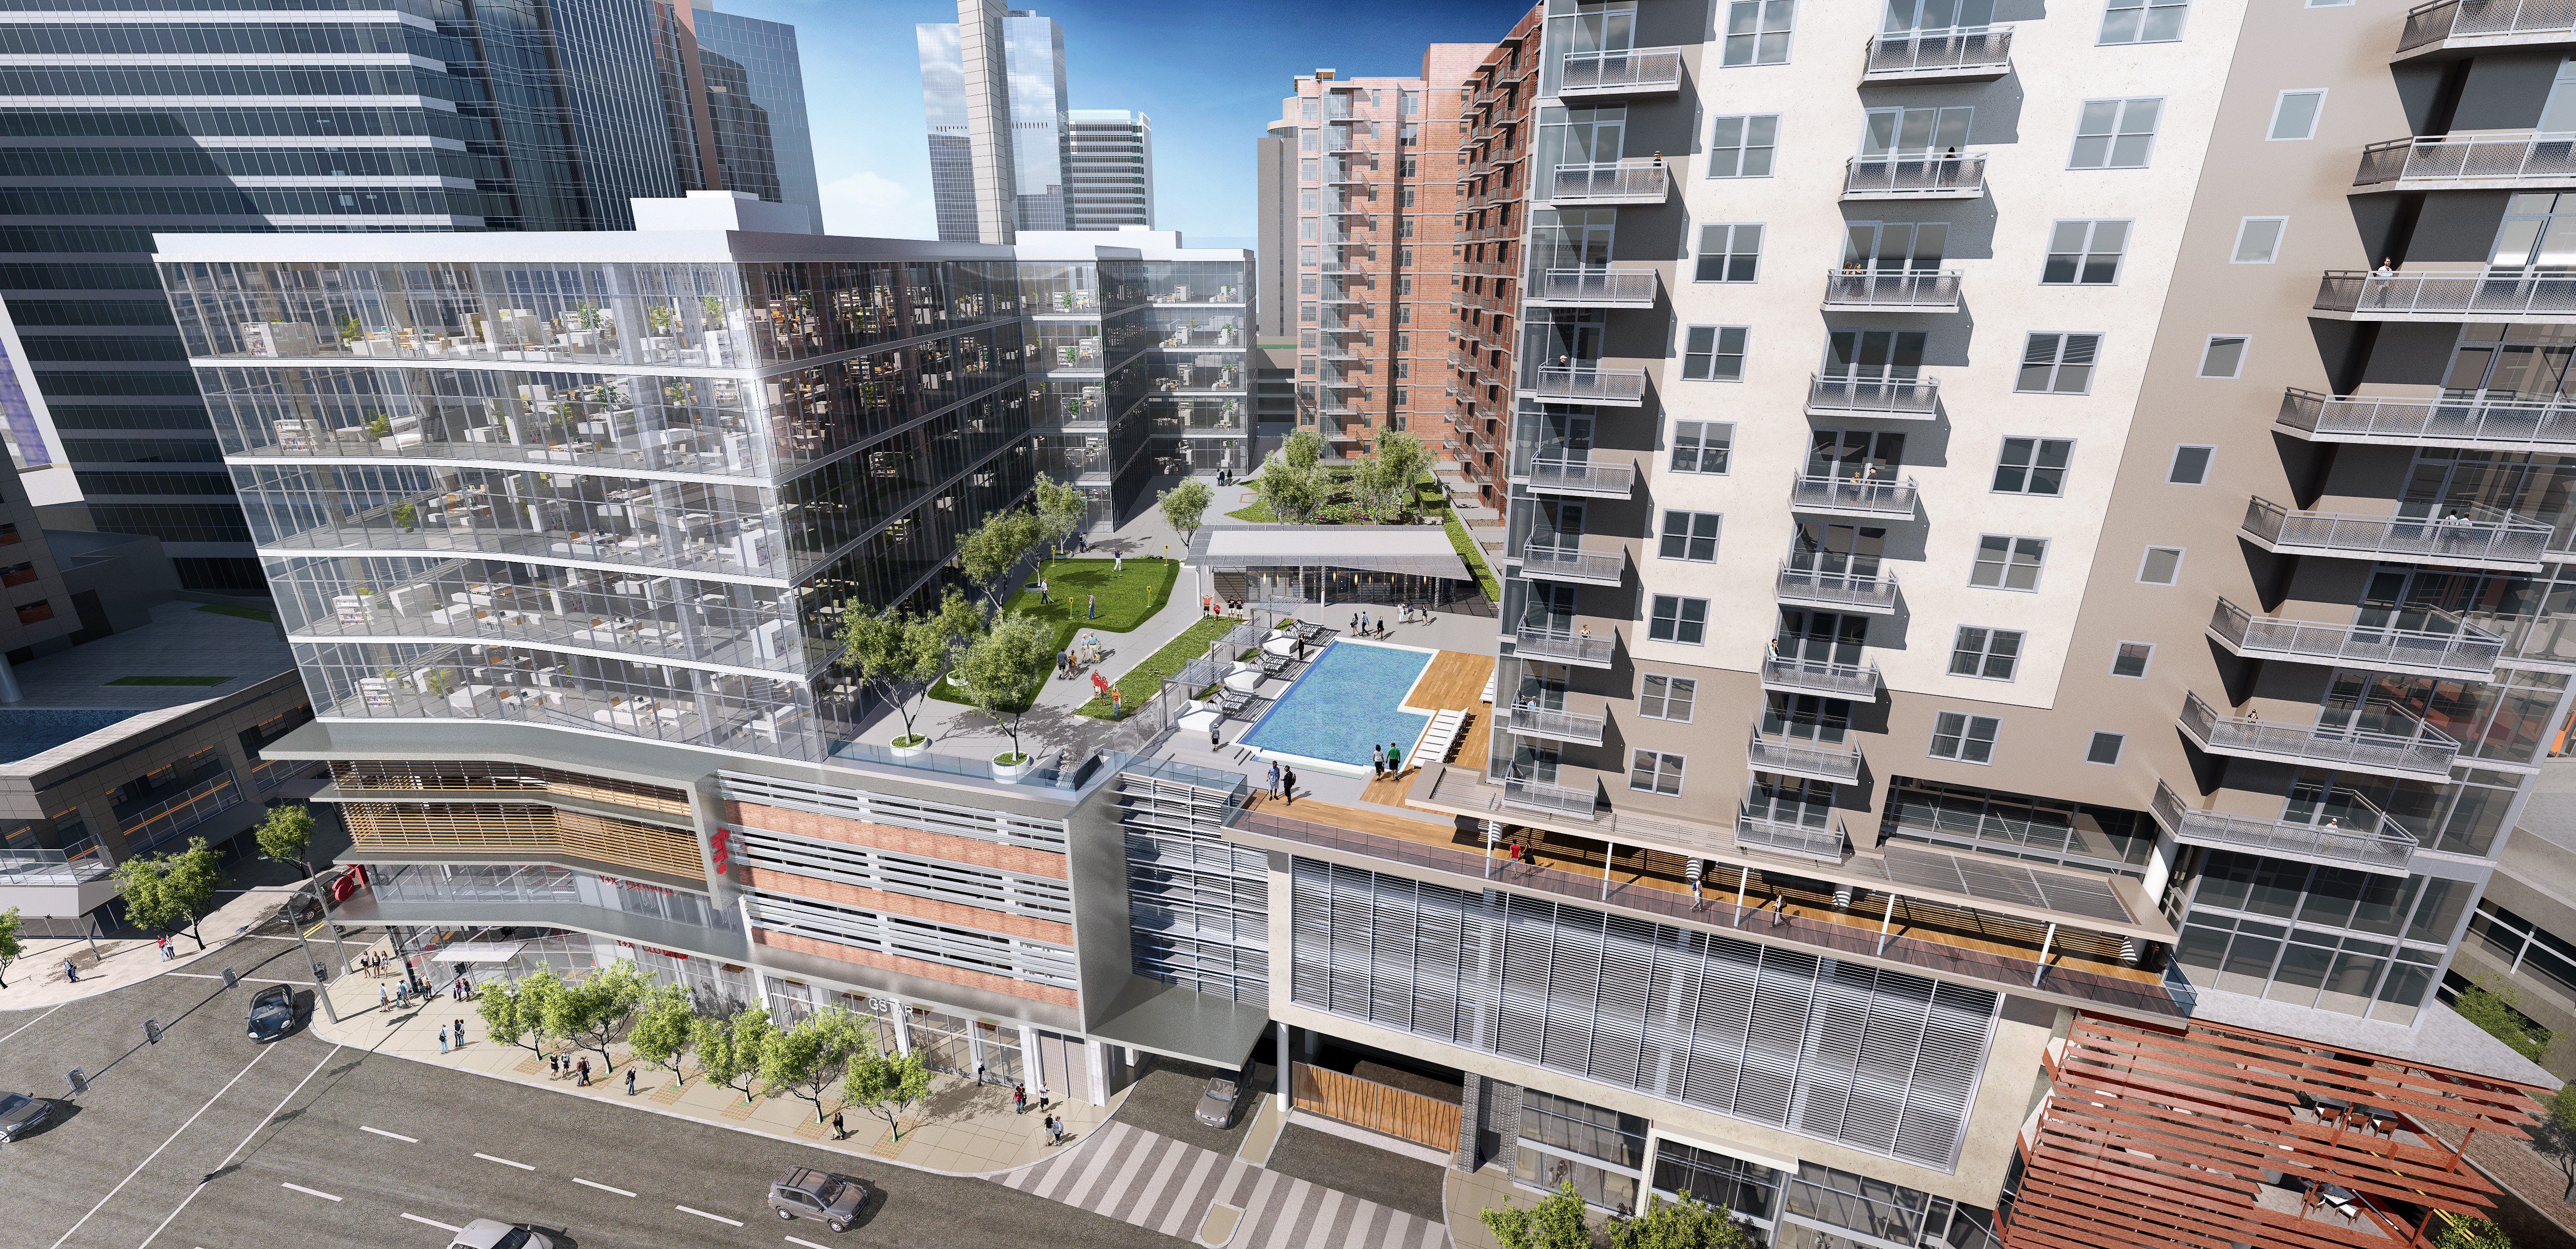 7 Popular Siding Materials To Consider: 10 Downtown Phoenix Development Projects To Watch